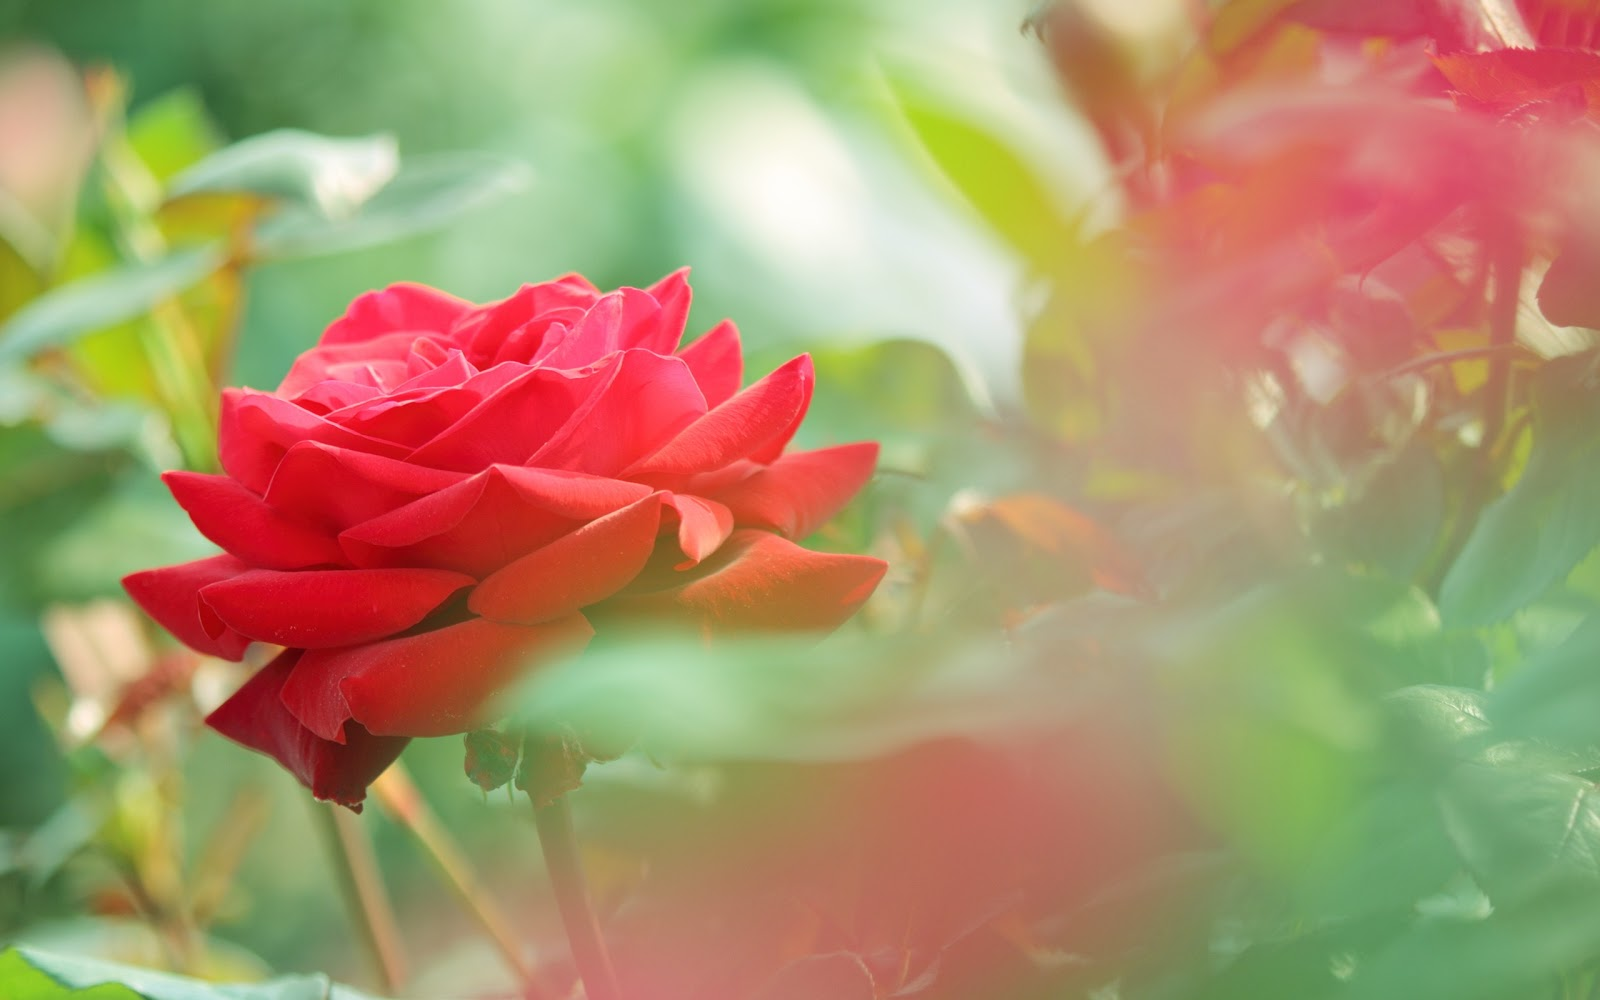 Beautiful Red Rose Flower HD Wallpaper Love Wallpapers Romantic Wallpapers - Stock Photos ...